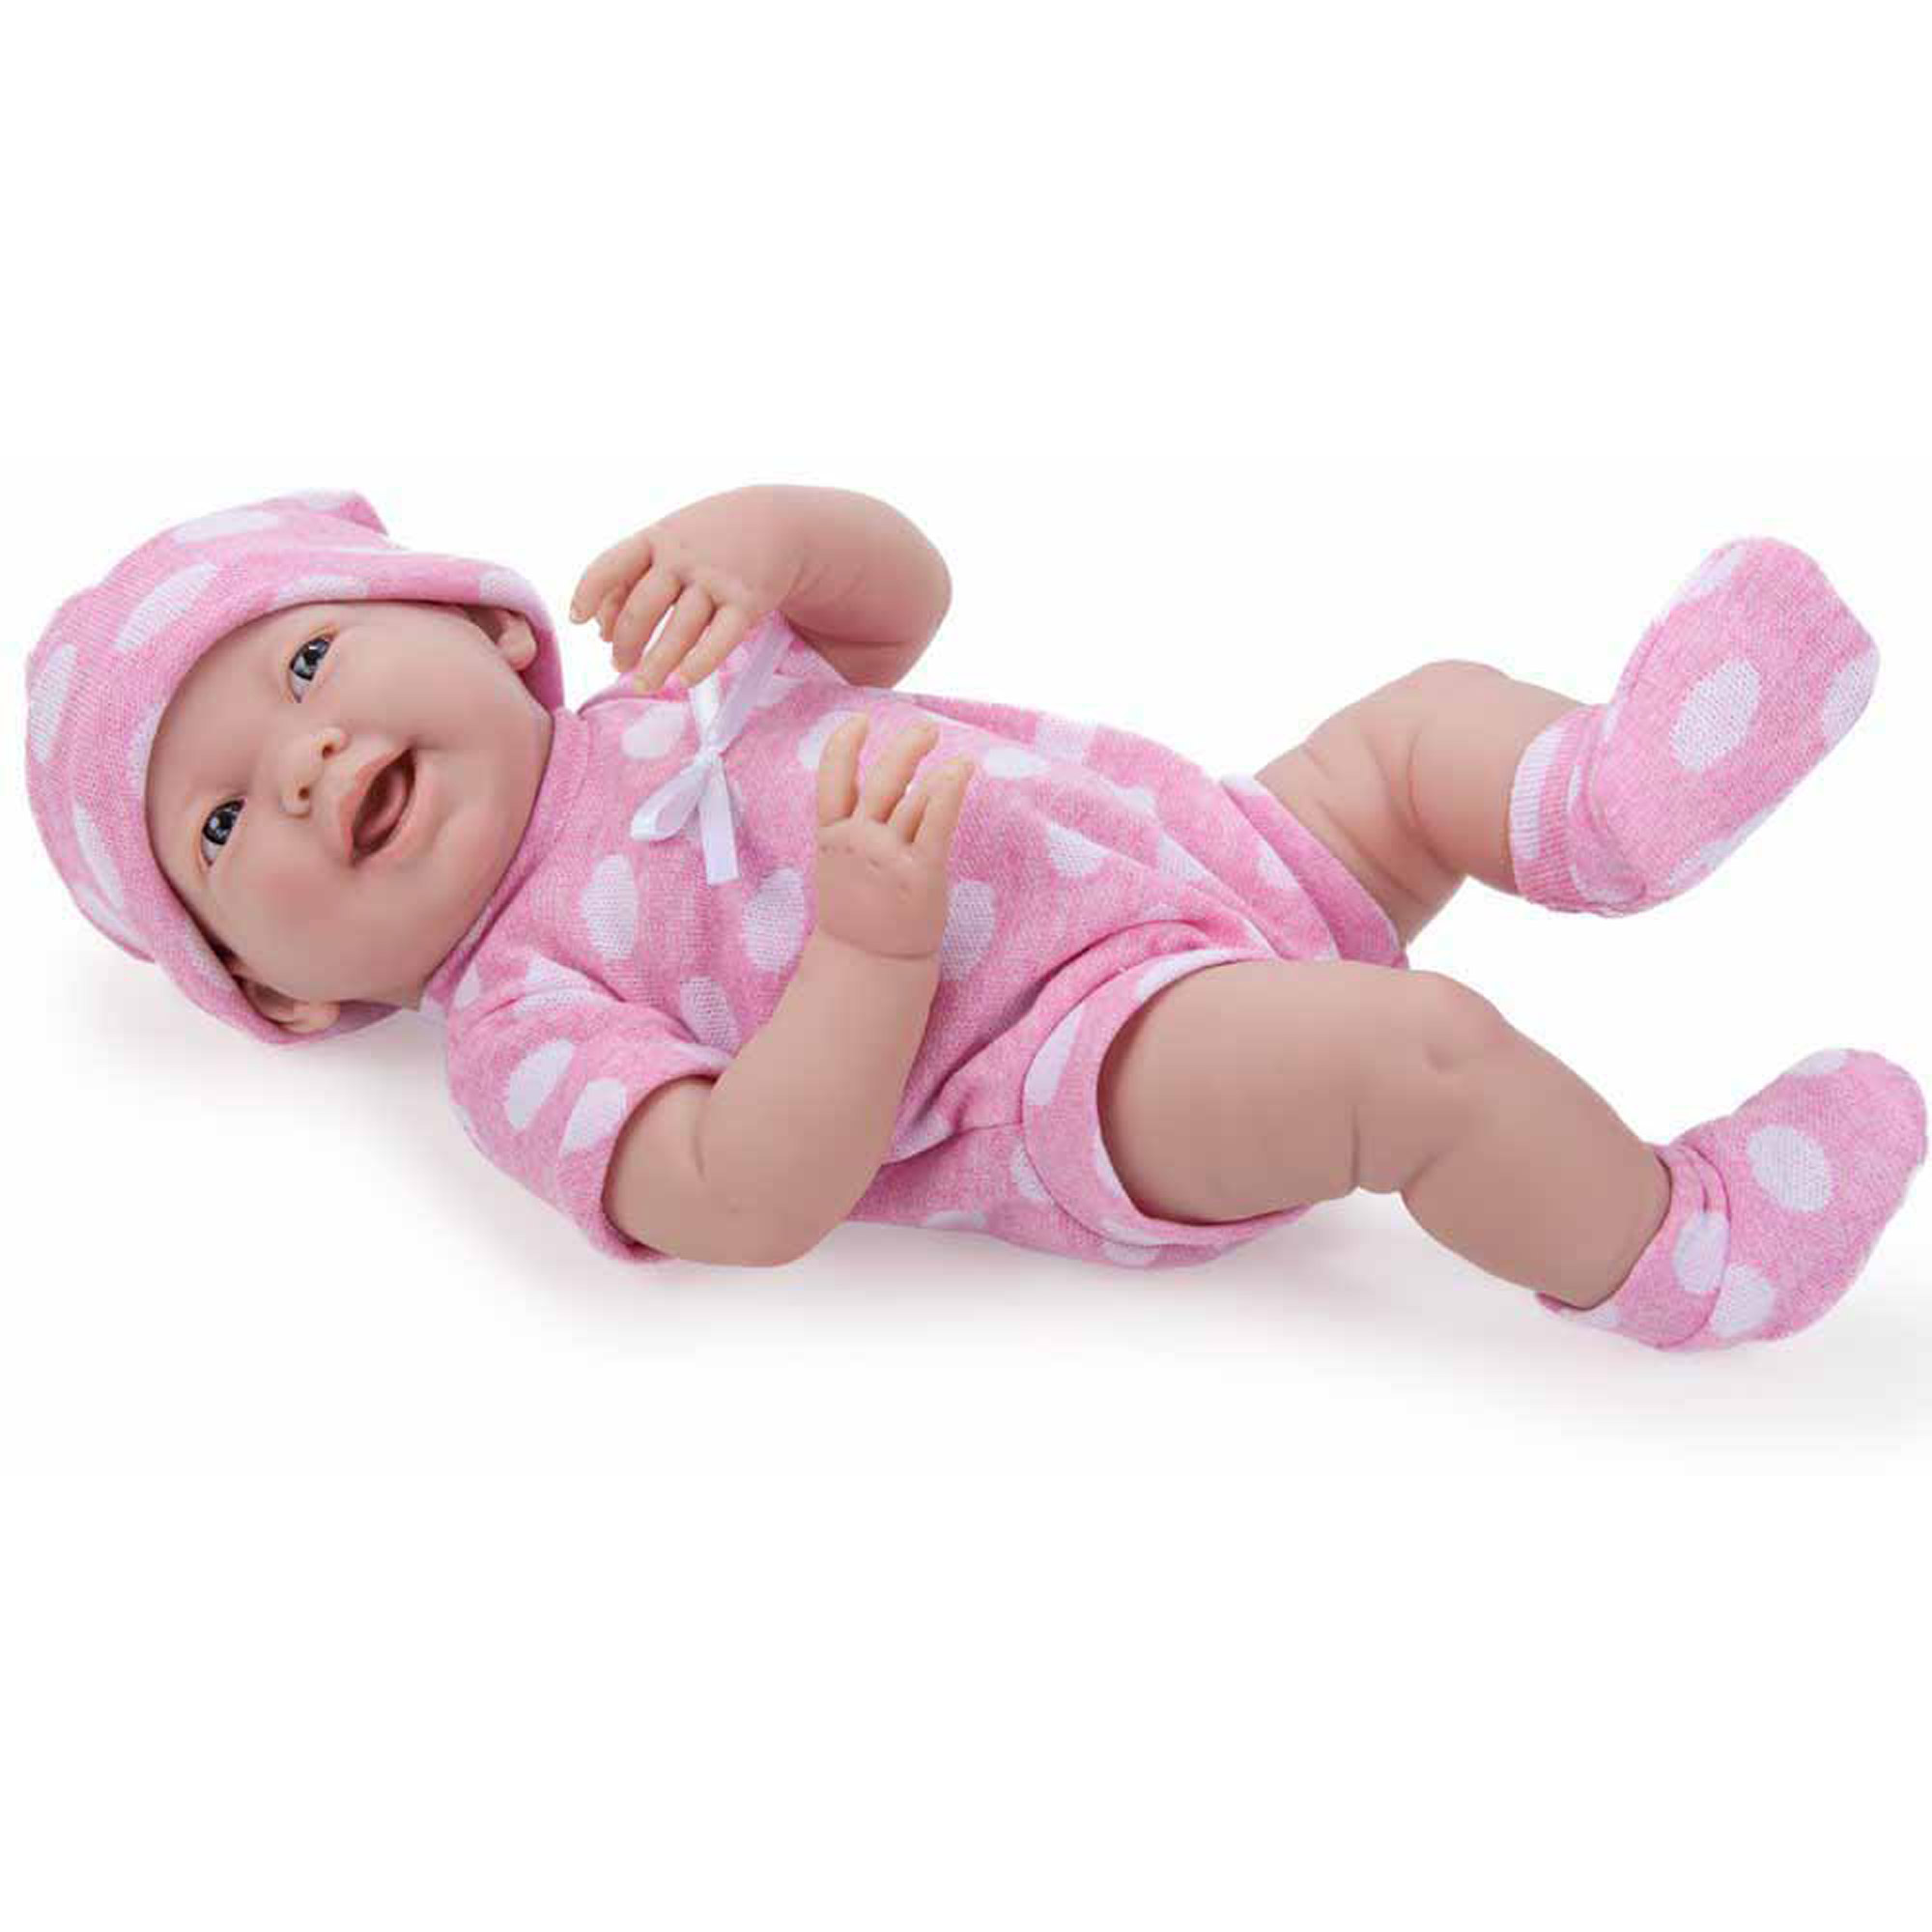 "La Newborn 15"" All-Vinyl Life-Like Baby Doll, Pretty Polka Dot Set, Real Girl"